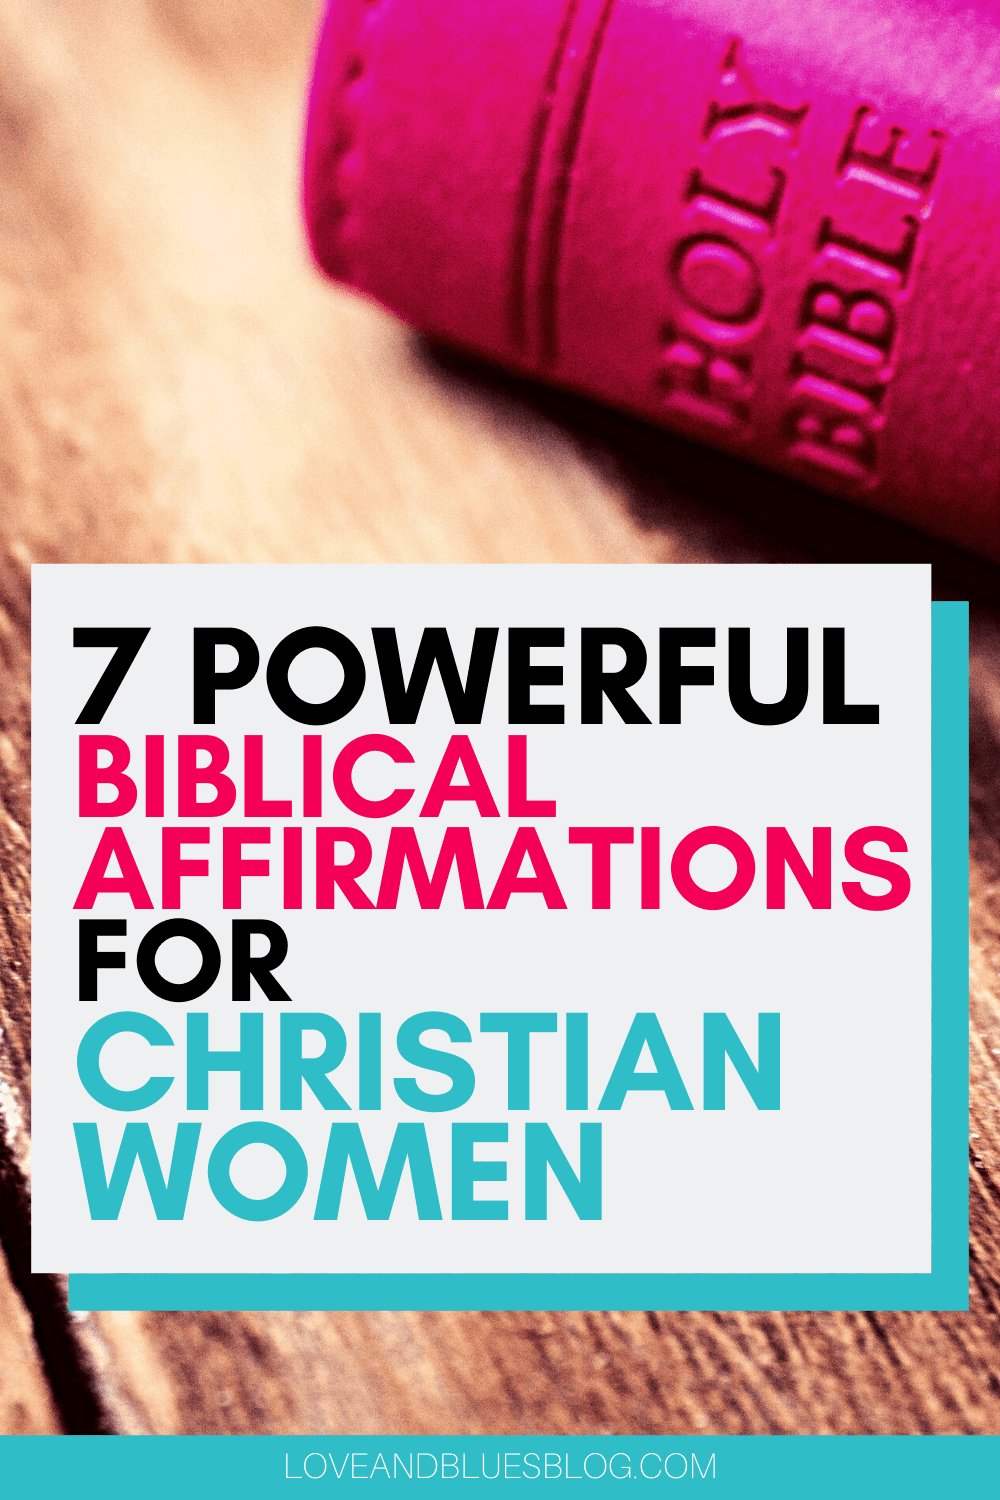 Amazing biblical affirmations based on SCRIPTURE to help strengthen the Christian woman! a MUST read in this day and age!